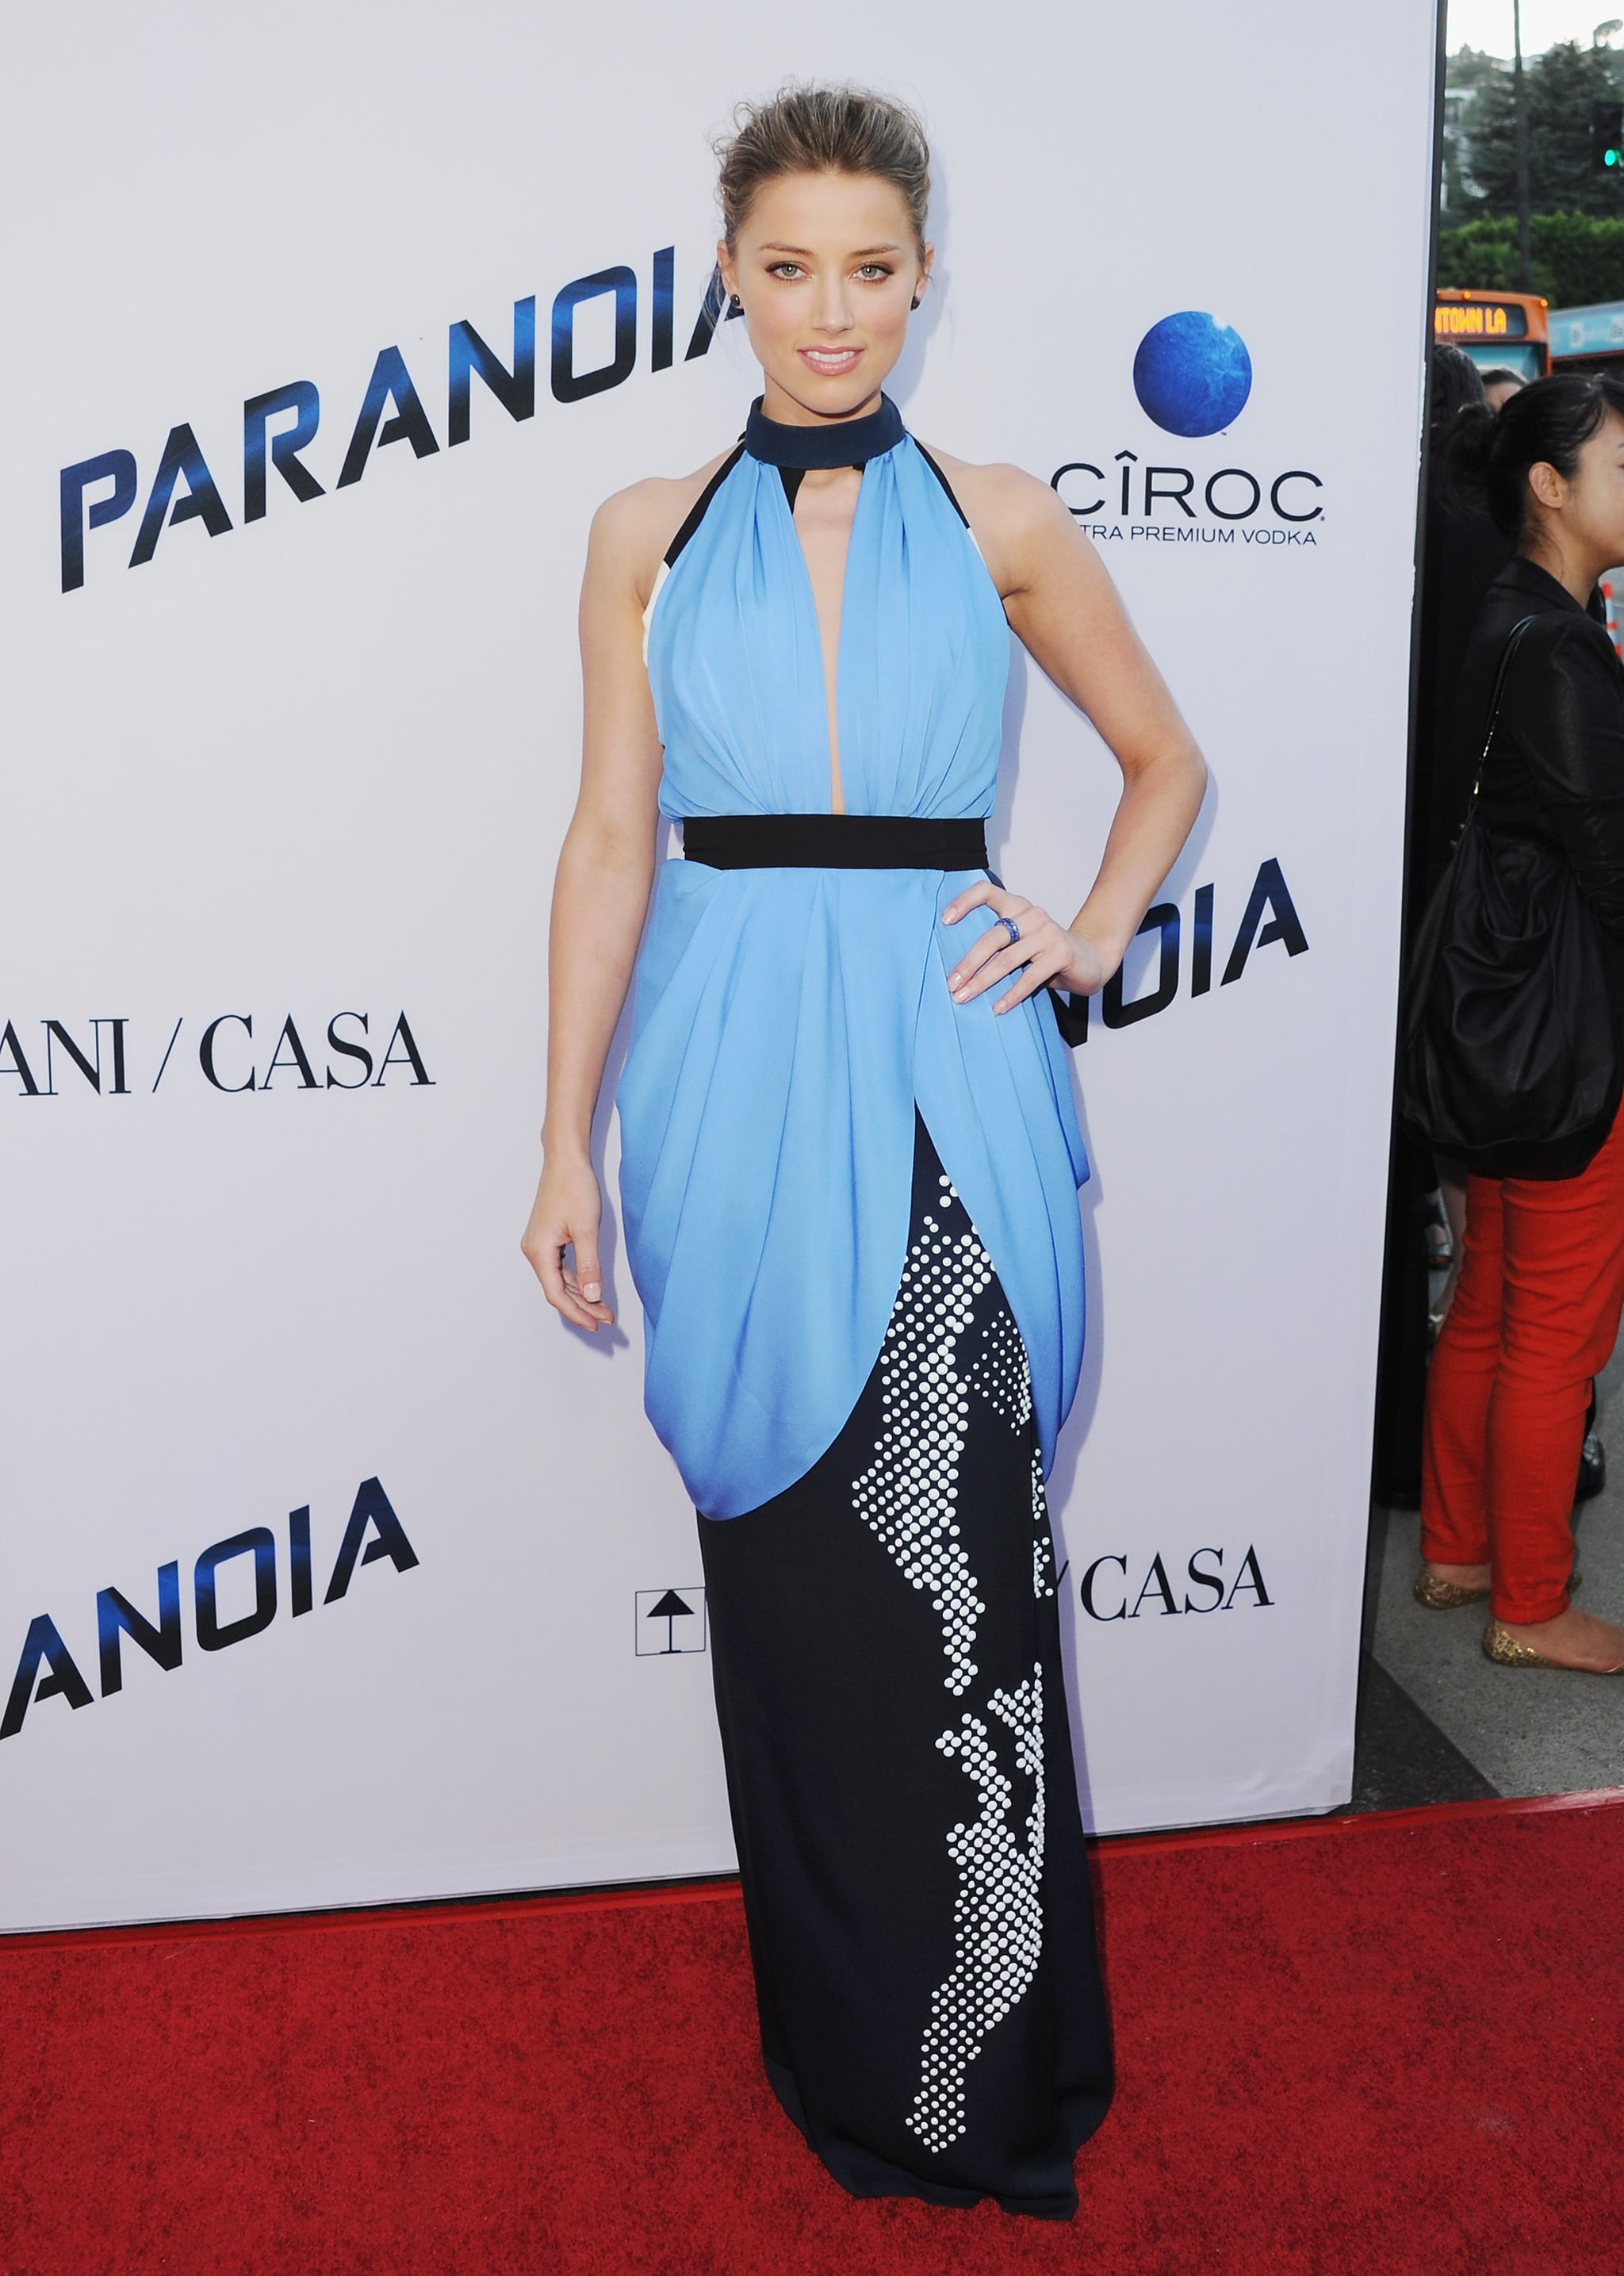 Amber Heard was a standout in Vionnet's draped blue design at the Paranoia premiere in LA.